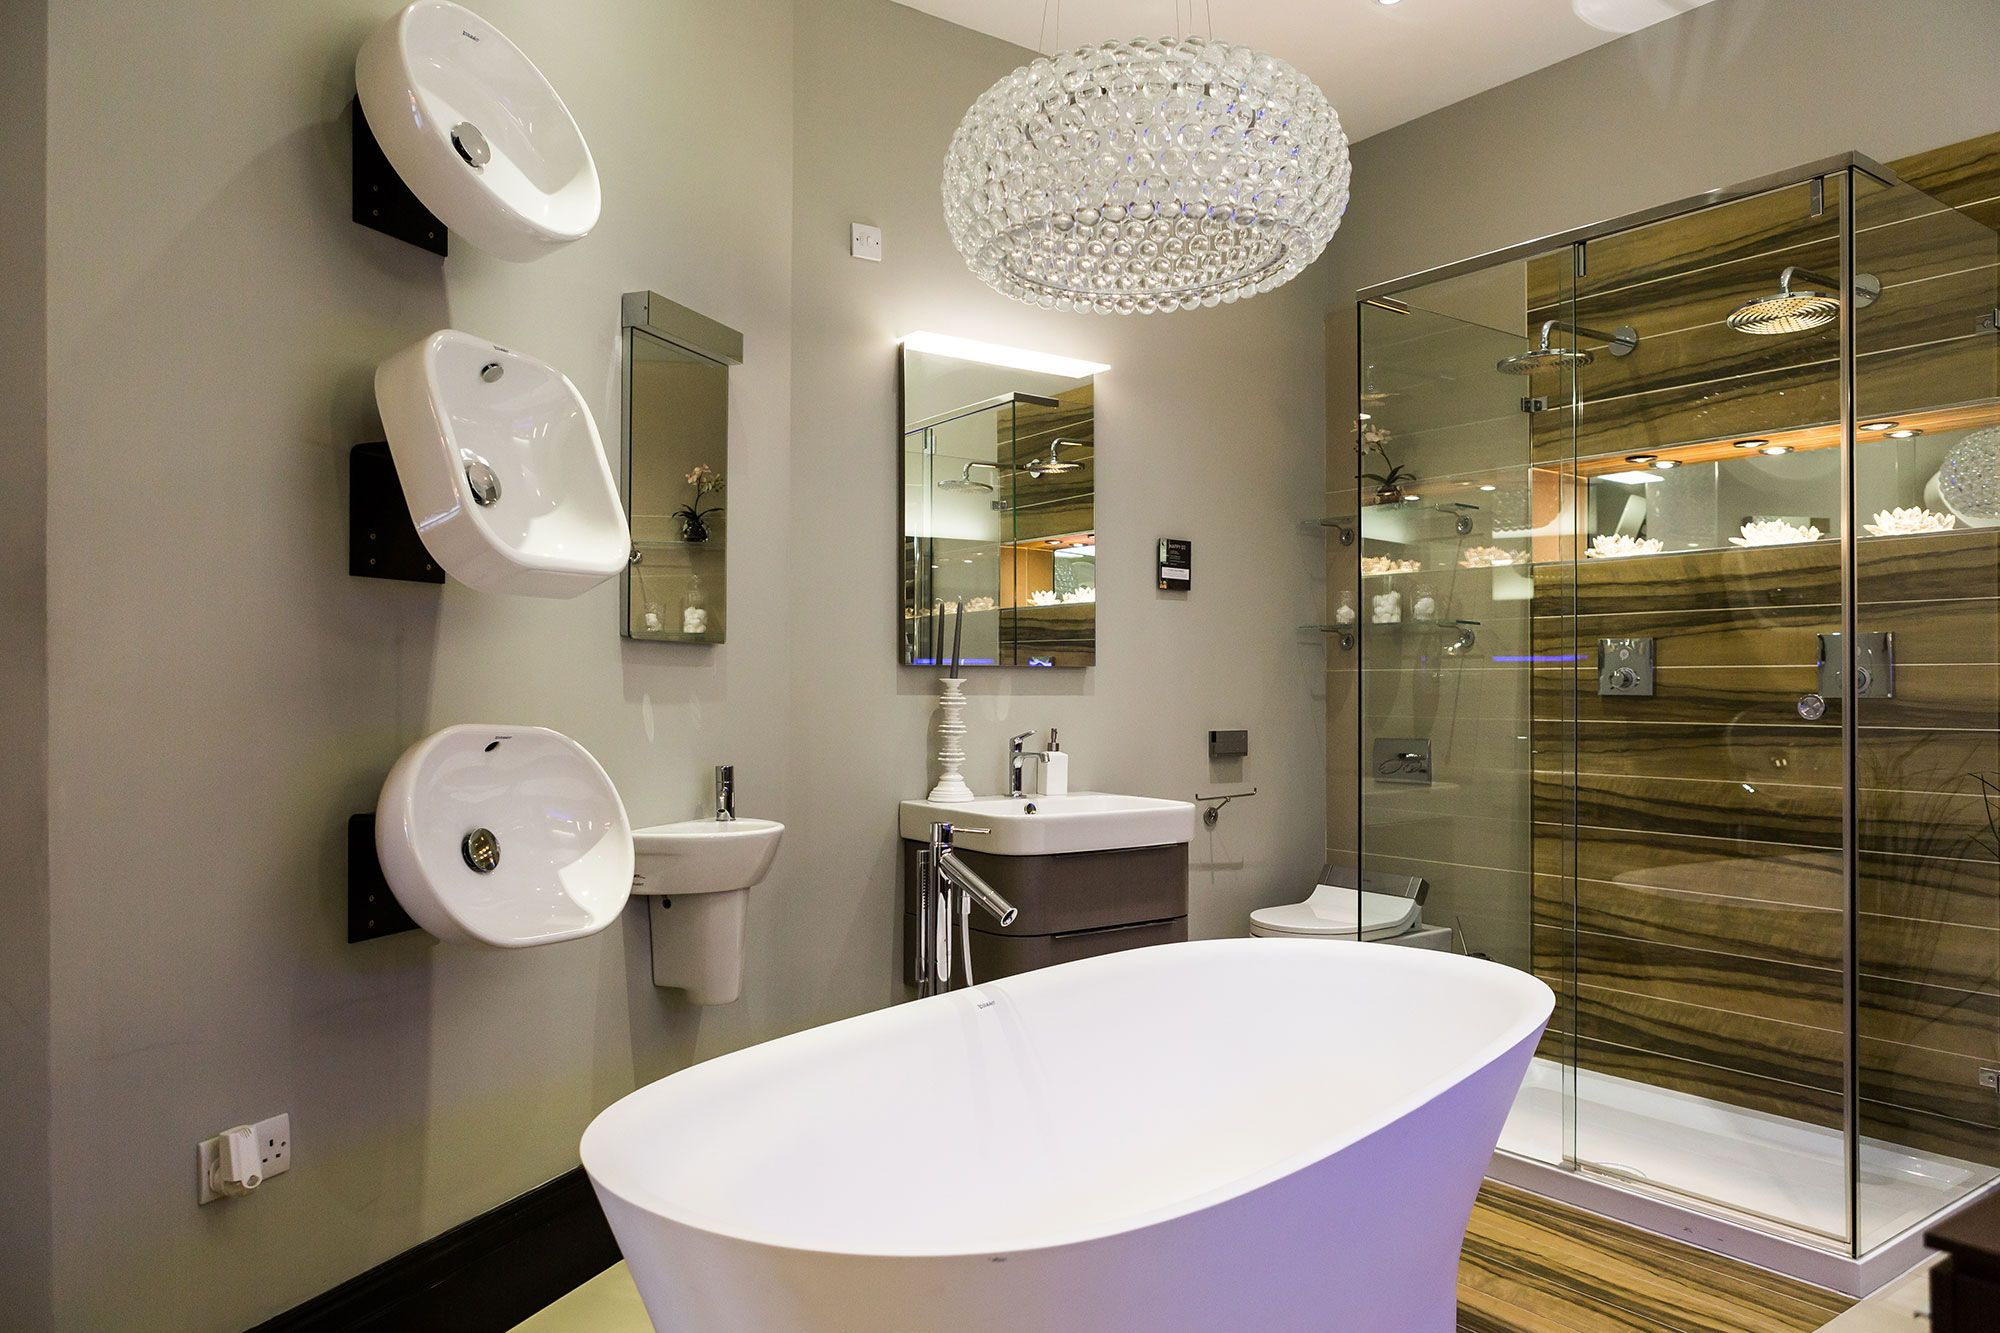 A Contemporary Room Set In Our Newly Developed Fulham Showroom Bathrooms Luxurybathrooms Contemporarybathrooms Contemporary Bathrooms Bathroom Showrooms Showroom